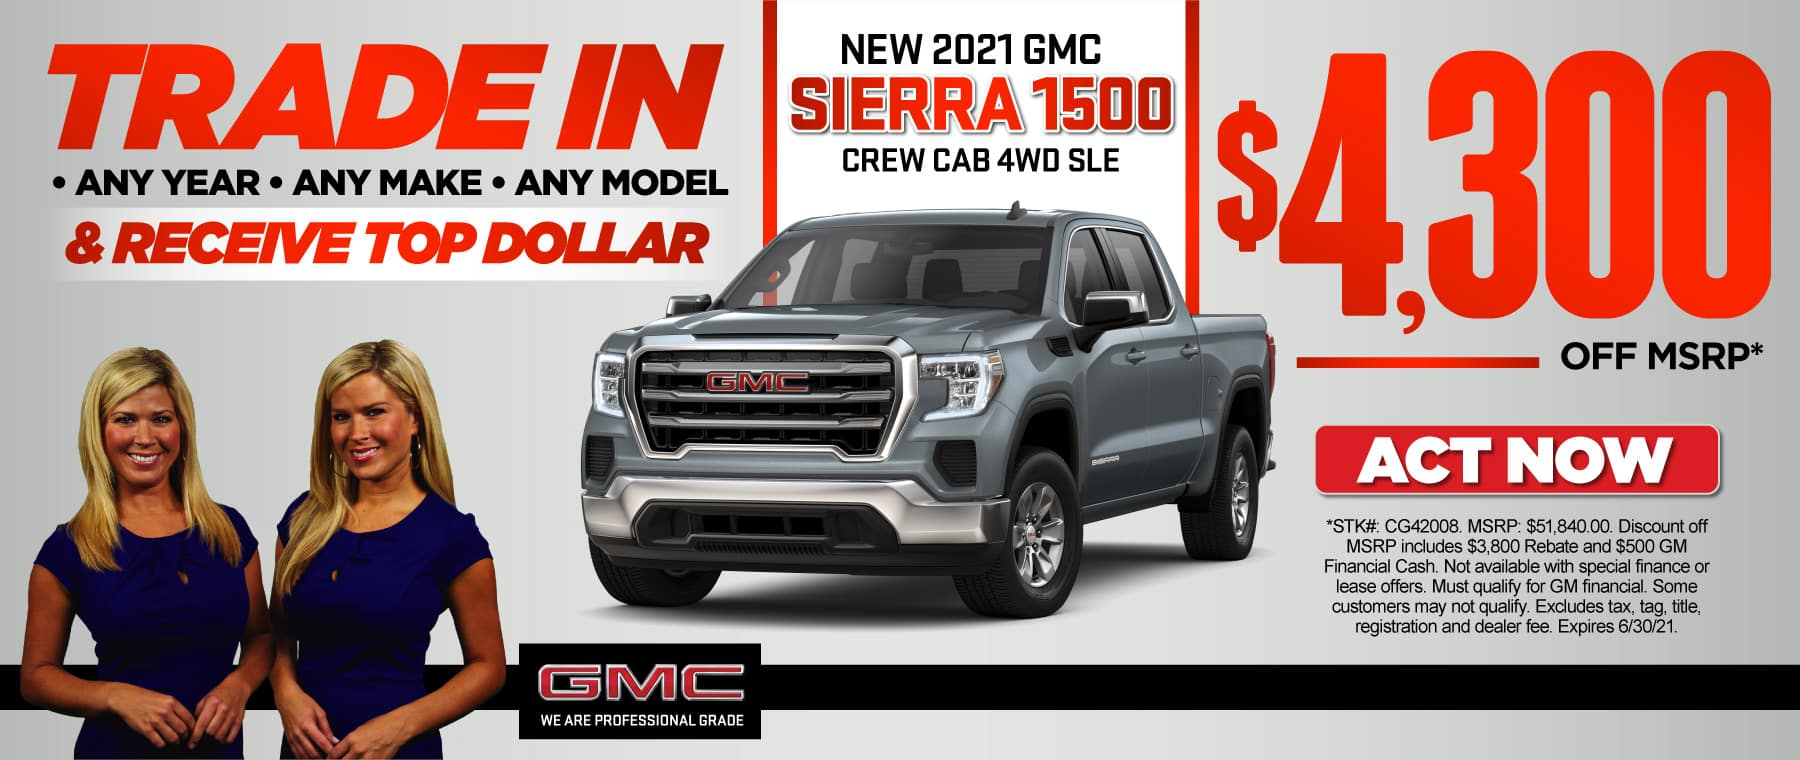 New 2021 GMC Sierra 1500 Crew Cab 4WD SLE | $4,300 Off MSRP | ACT NOW